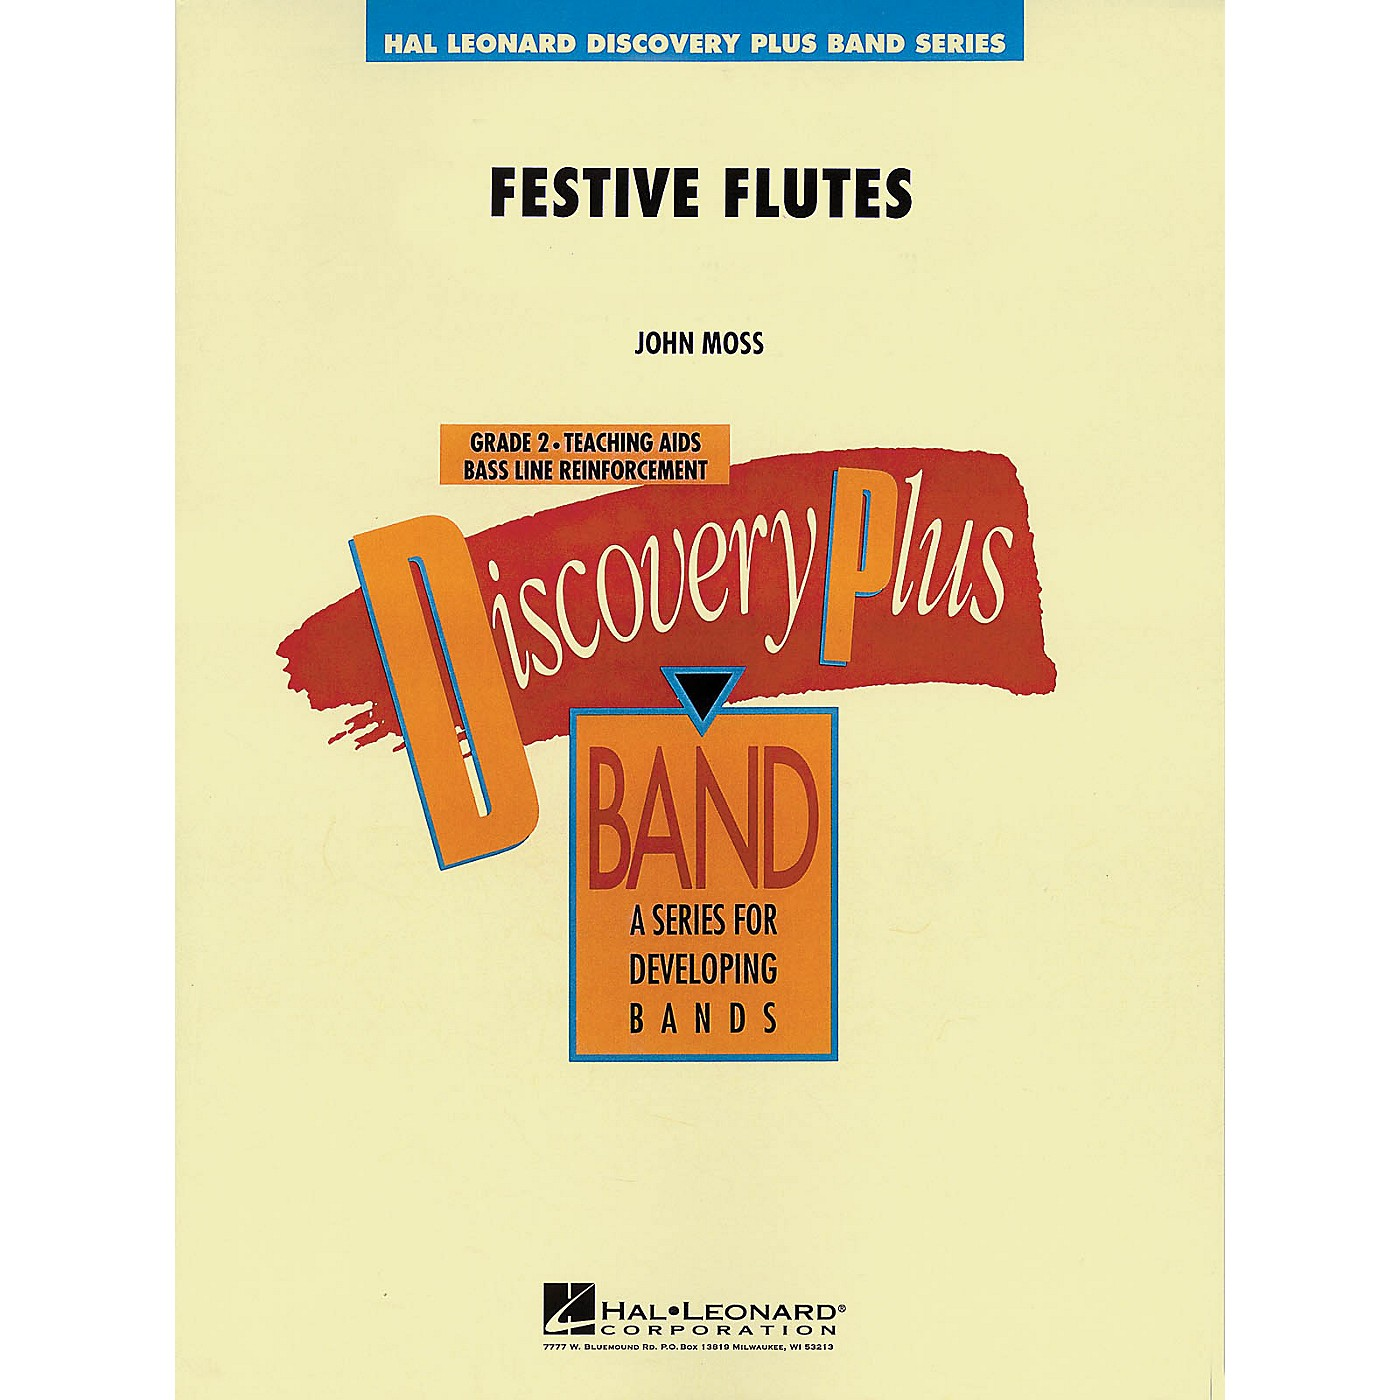 Hal Leonard Festive Flutes - Discovery Plus Concert Band Series Level 2 composed by John Moss thumbnail